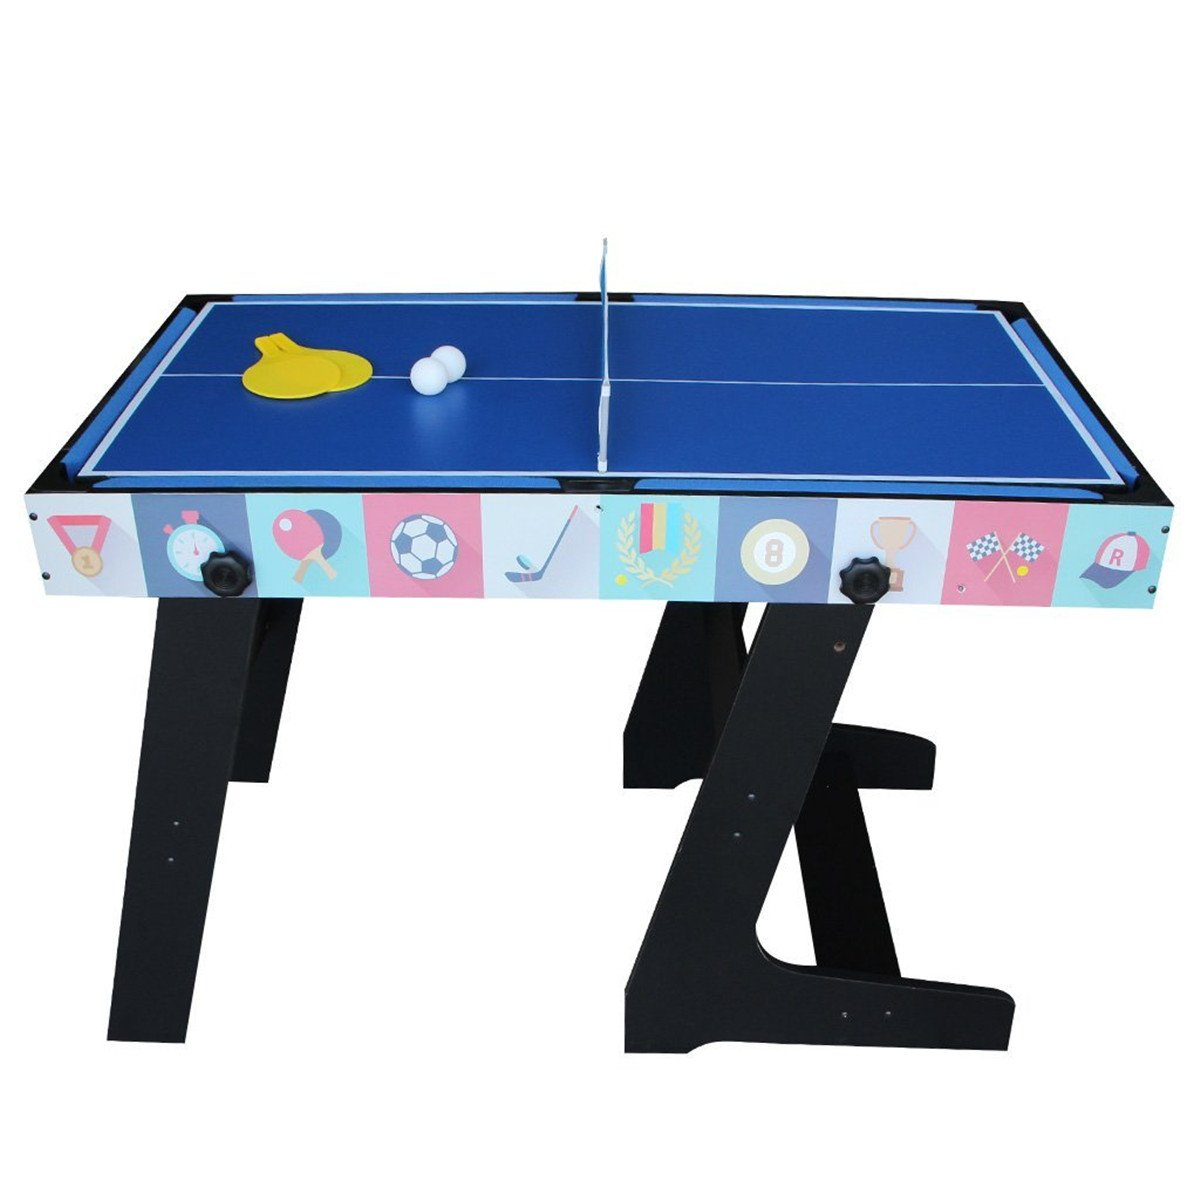 Deluxe 5 in 1 Top Game Table Folding Table-Table Tennis,Glide Hockey,Chess,Pool,Basketball Set by QYBK (Image #6)